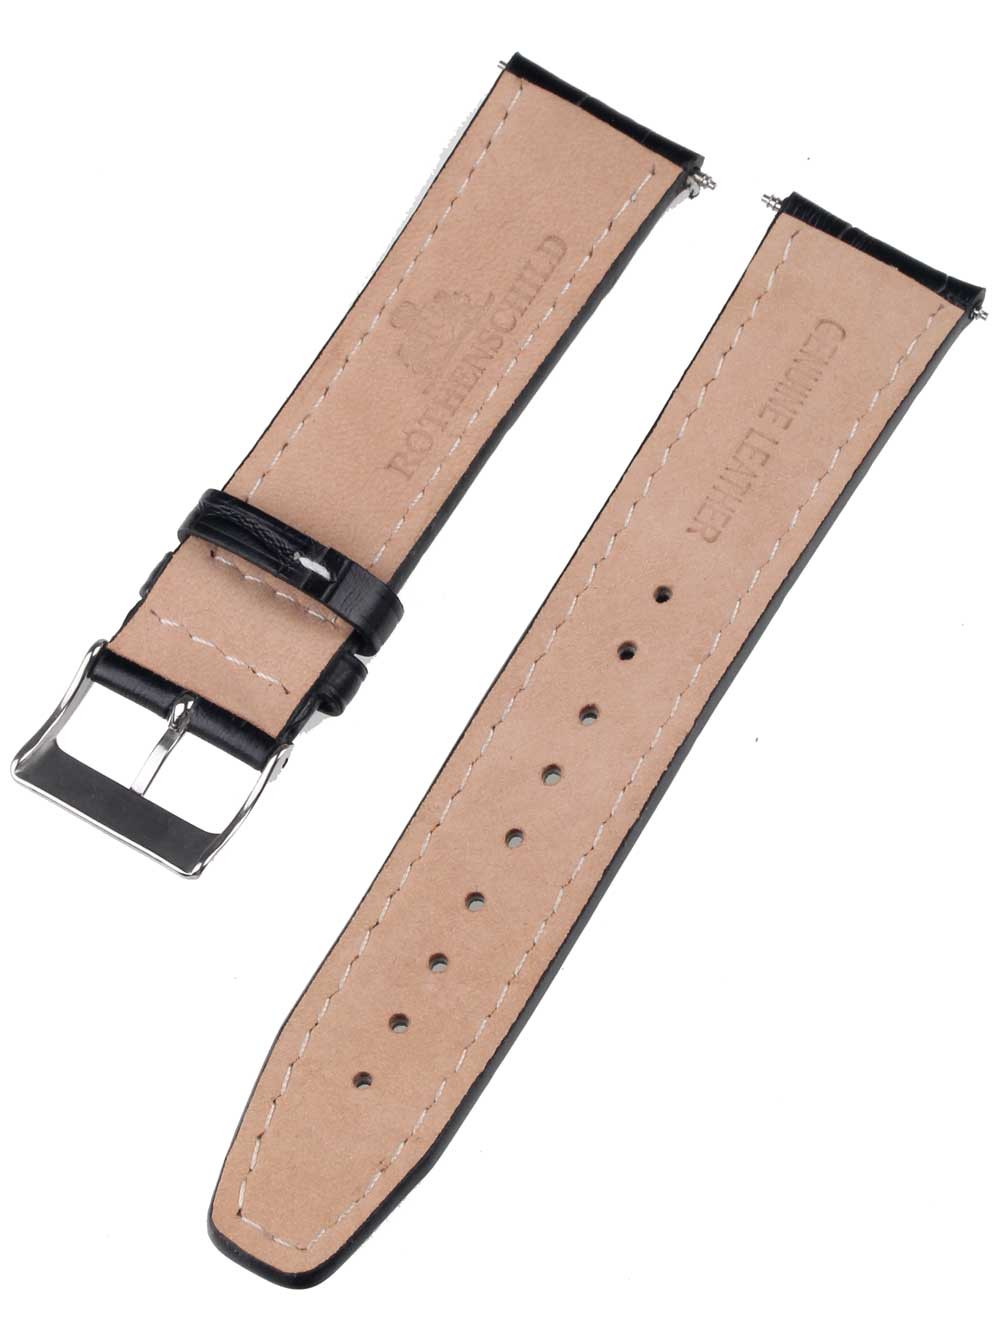 Rothenschild mid-17756 Universal Strap 22mm Black, Silver buckle